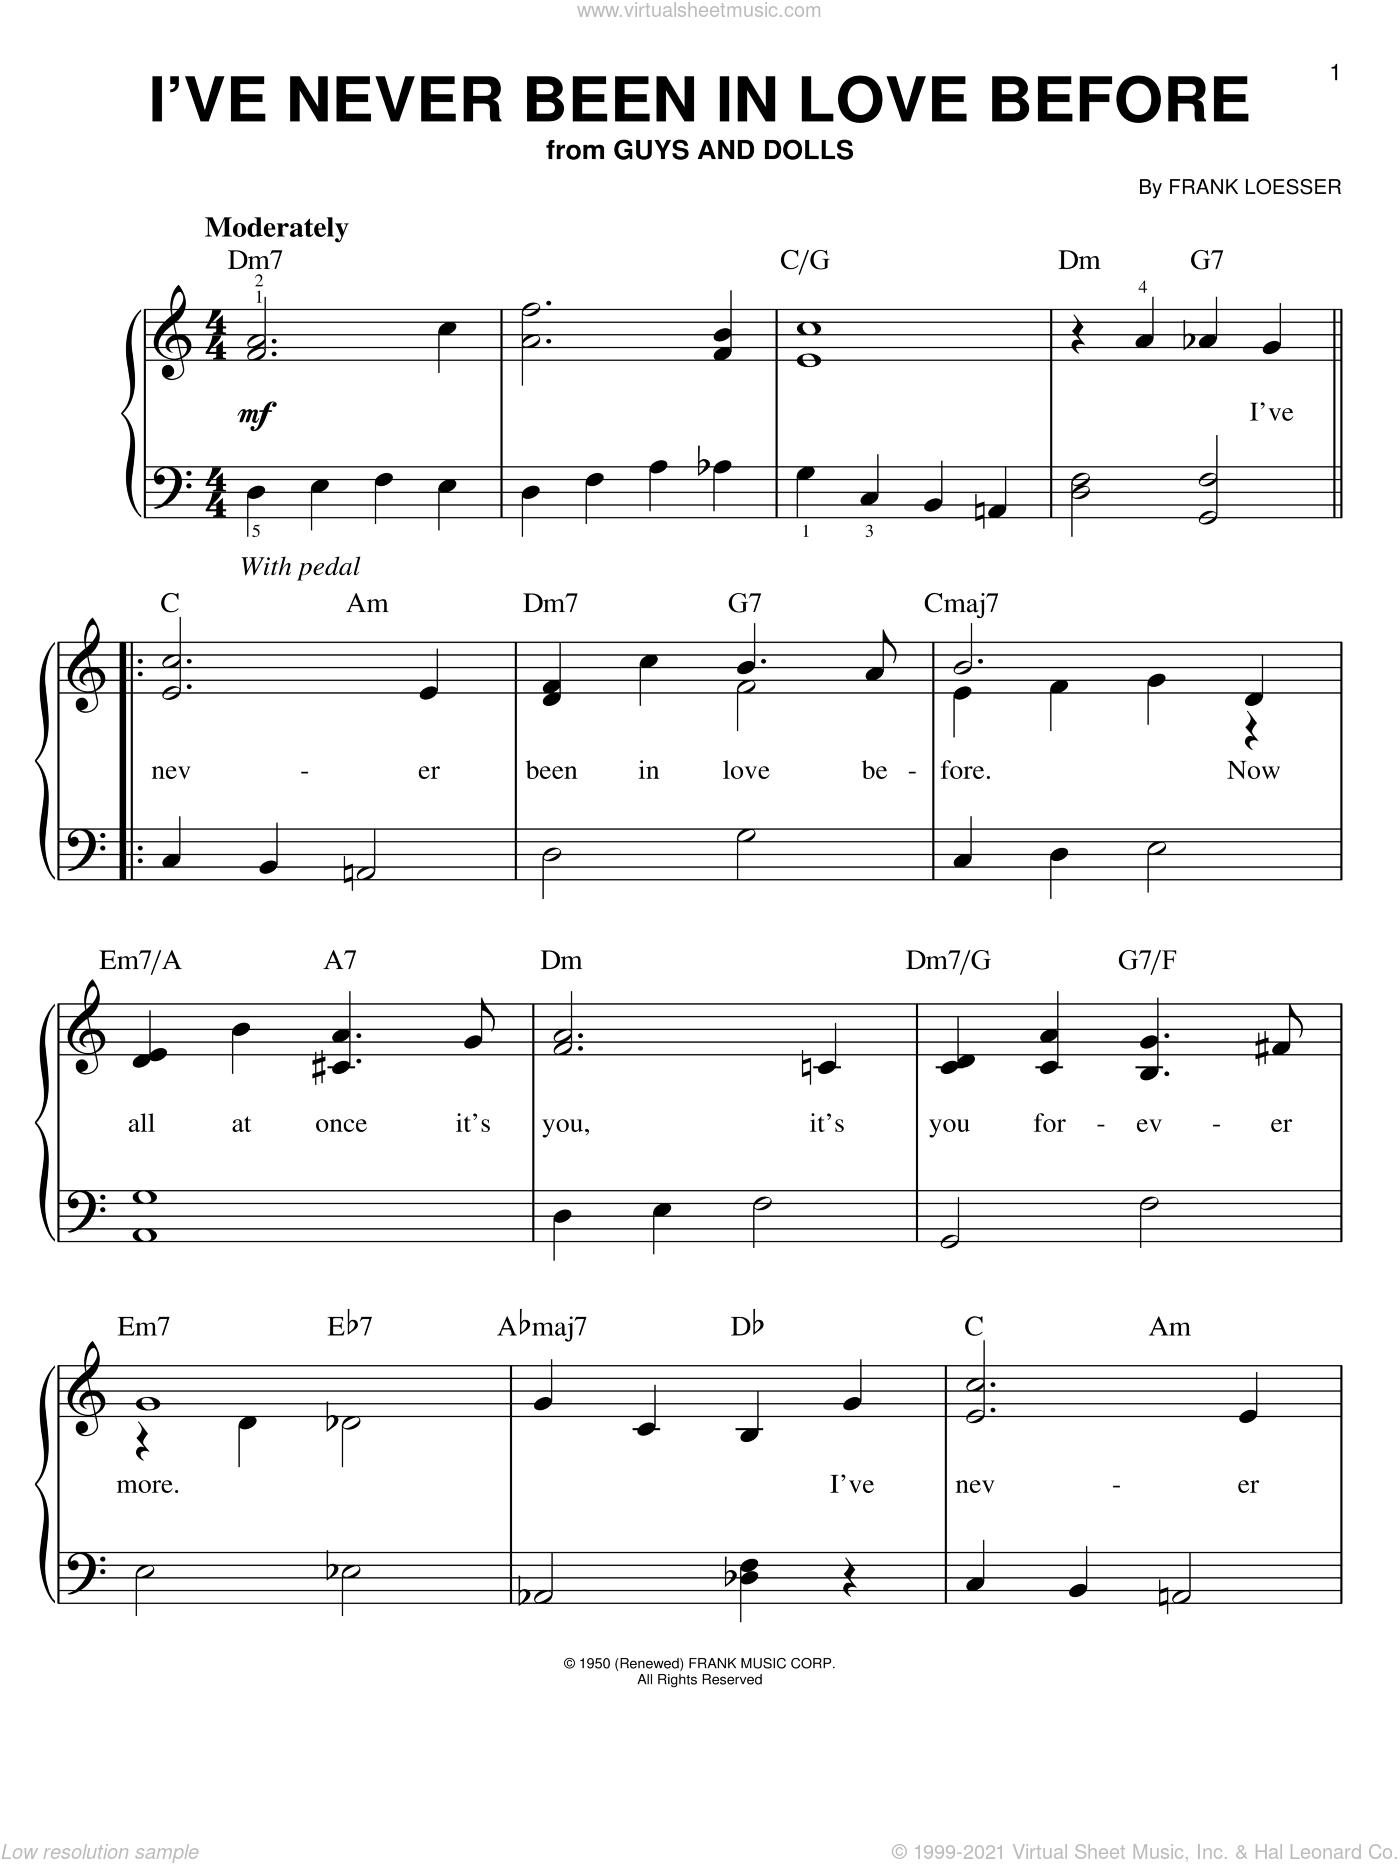 I've Never Been In Love Before sheet music for piano solo by Frank Loesser and Guys And Dolls (Musical), easy skill level